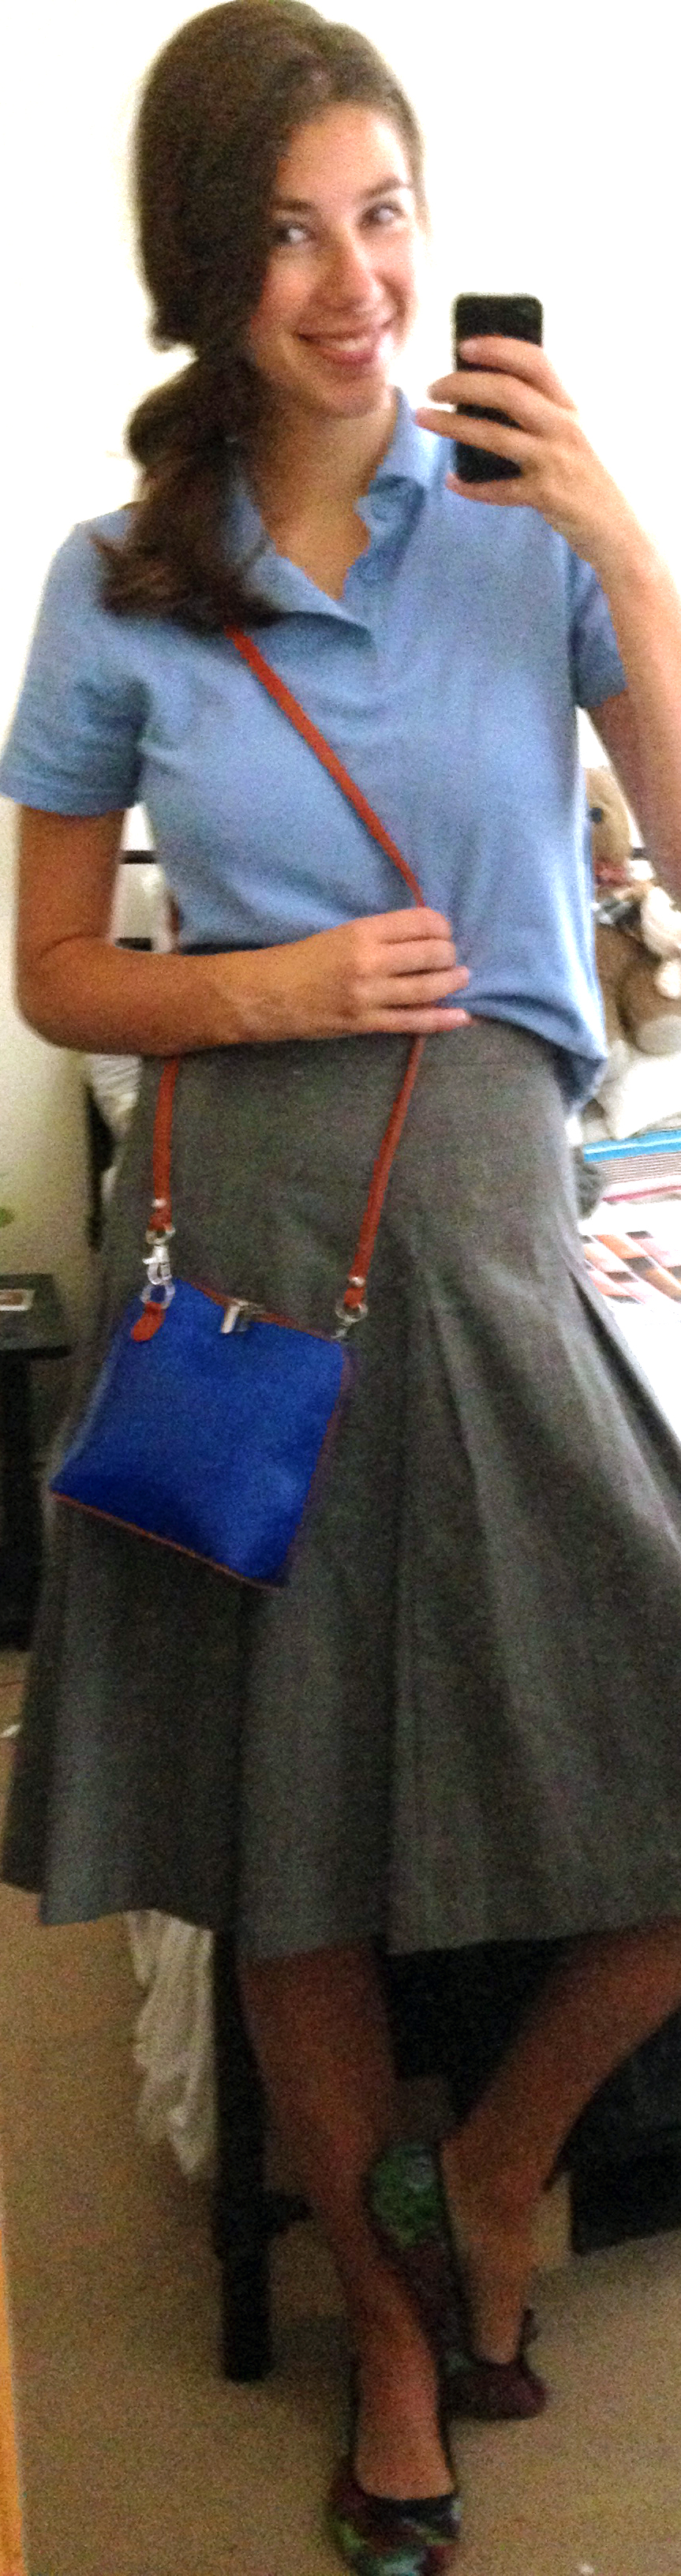 Target x Isaac Mizrahi Grey Plaid Skirt,  Boy's Polo Shirt ,  Cobalt Blue Crossbody Bag ,  Floral Flats